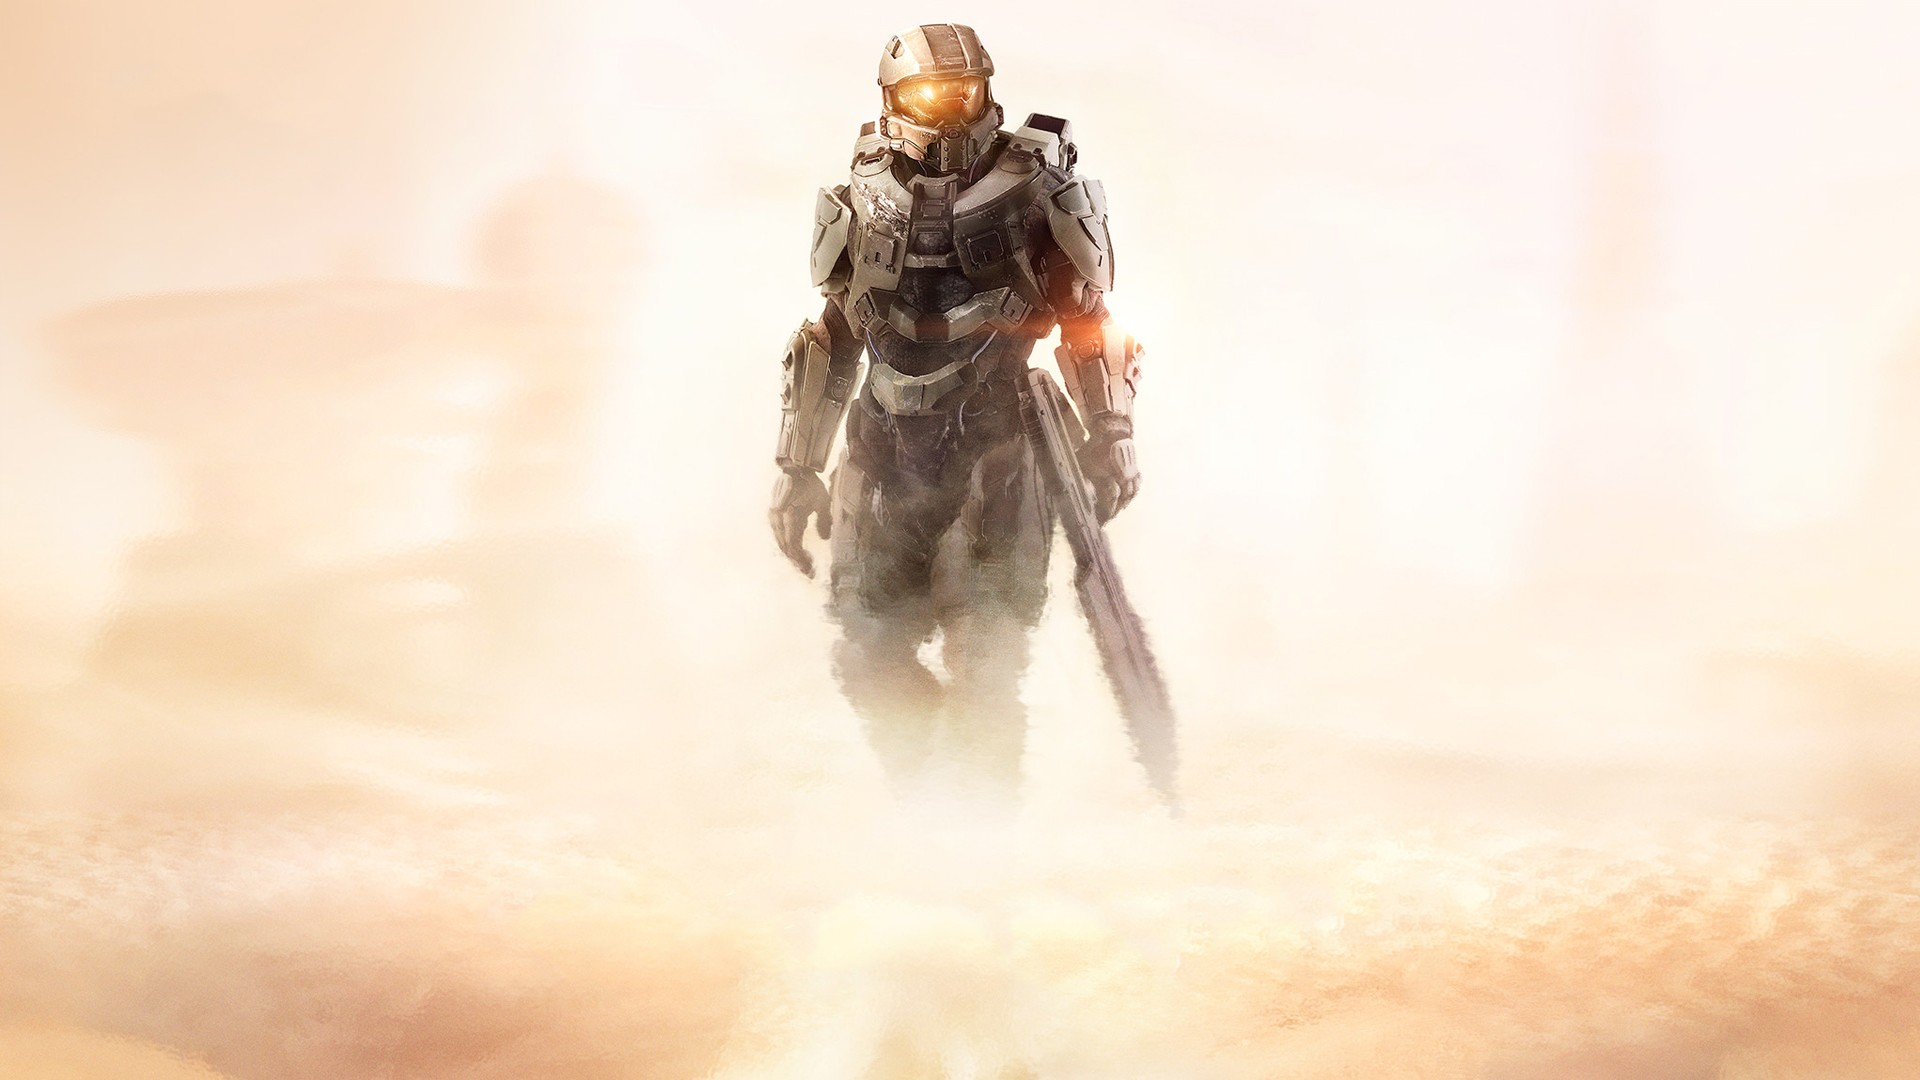 Halo 5 Wallpaper HD 1080p